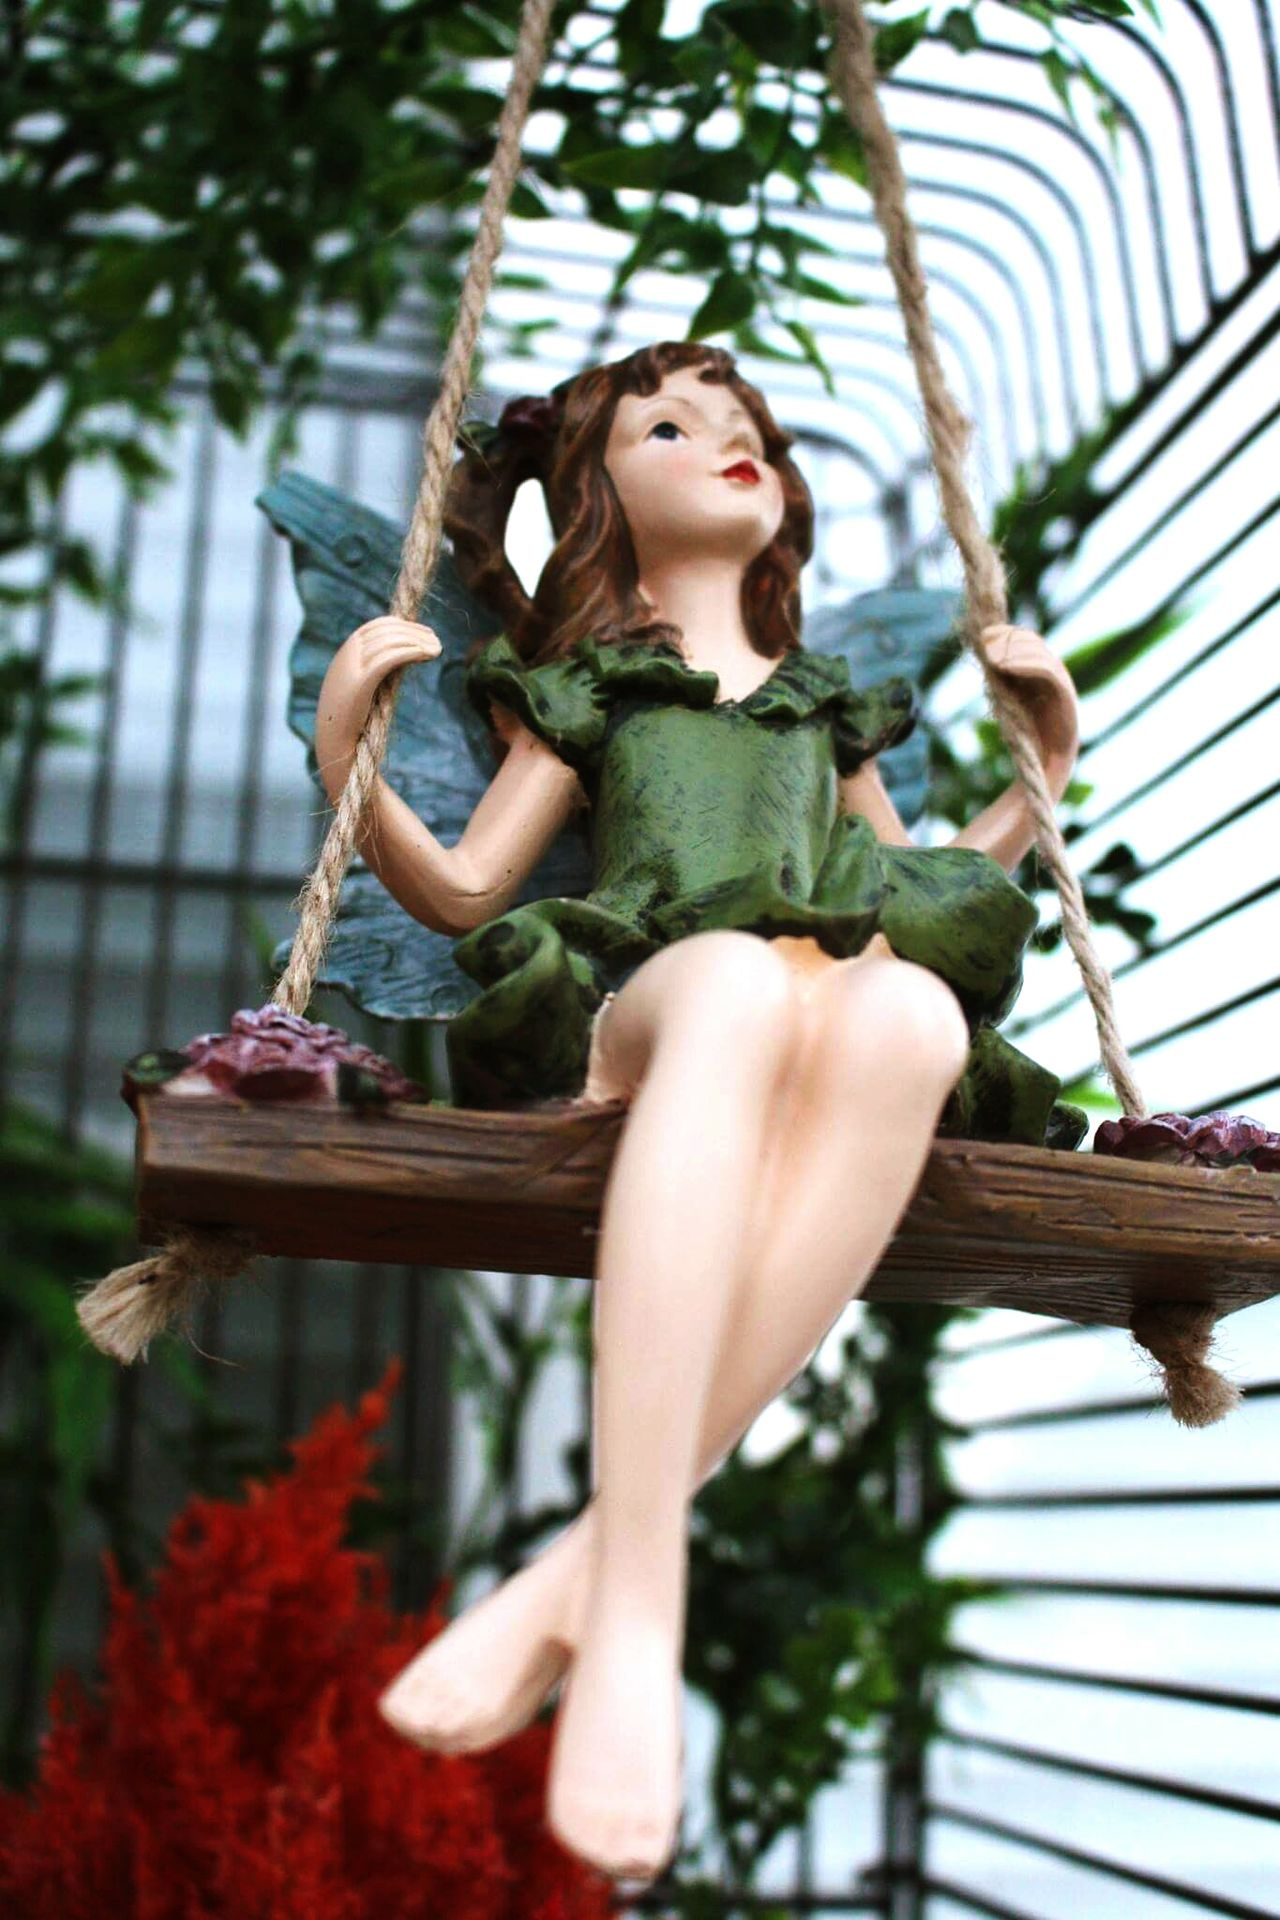 Leisure Activity Casual Clothing Lifestyles Low Angle View Person Three Quarter Length Young Women Leaf Full Length Long Hair Enjoyment Young Adult Focus On Foreground Holding Fun Day Leaves Fairy Fairyforest Fairytale  Fairy Garden